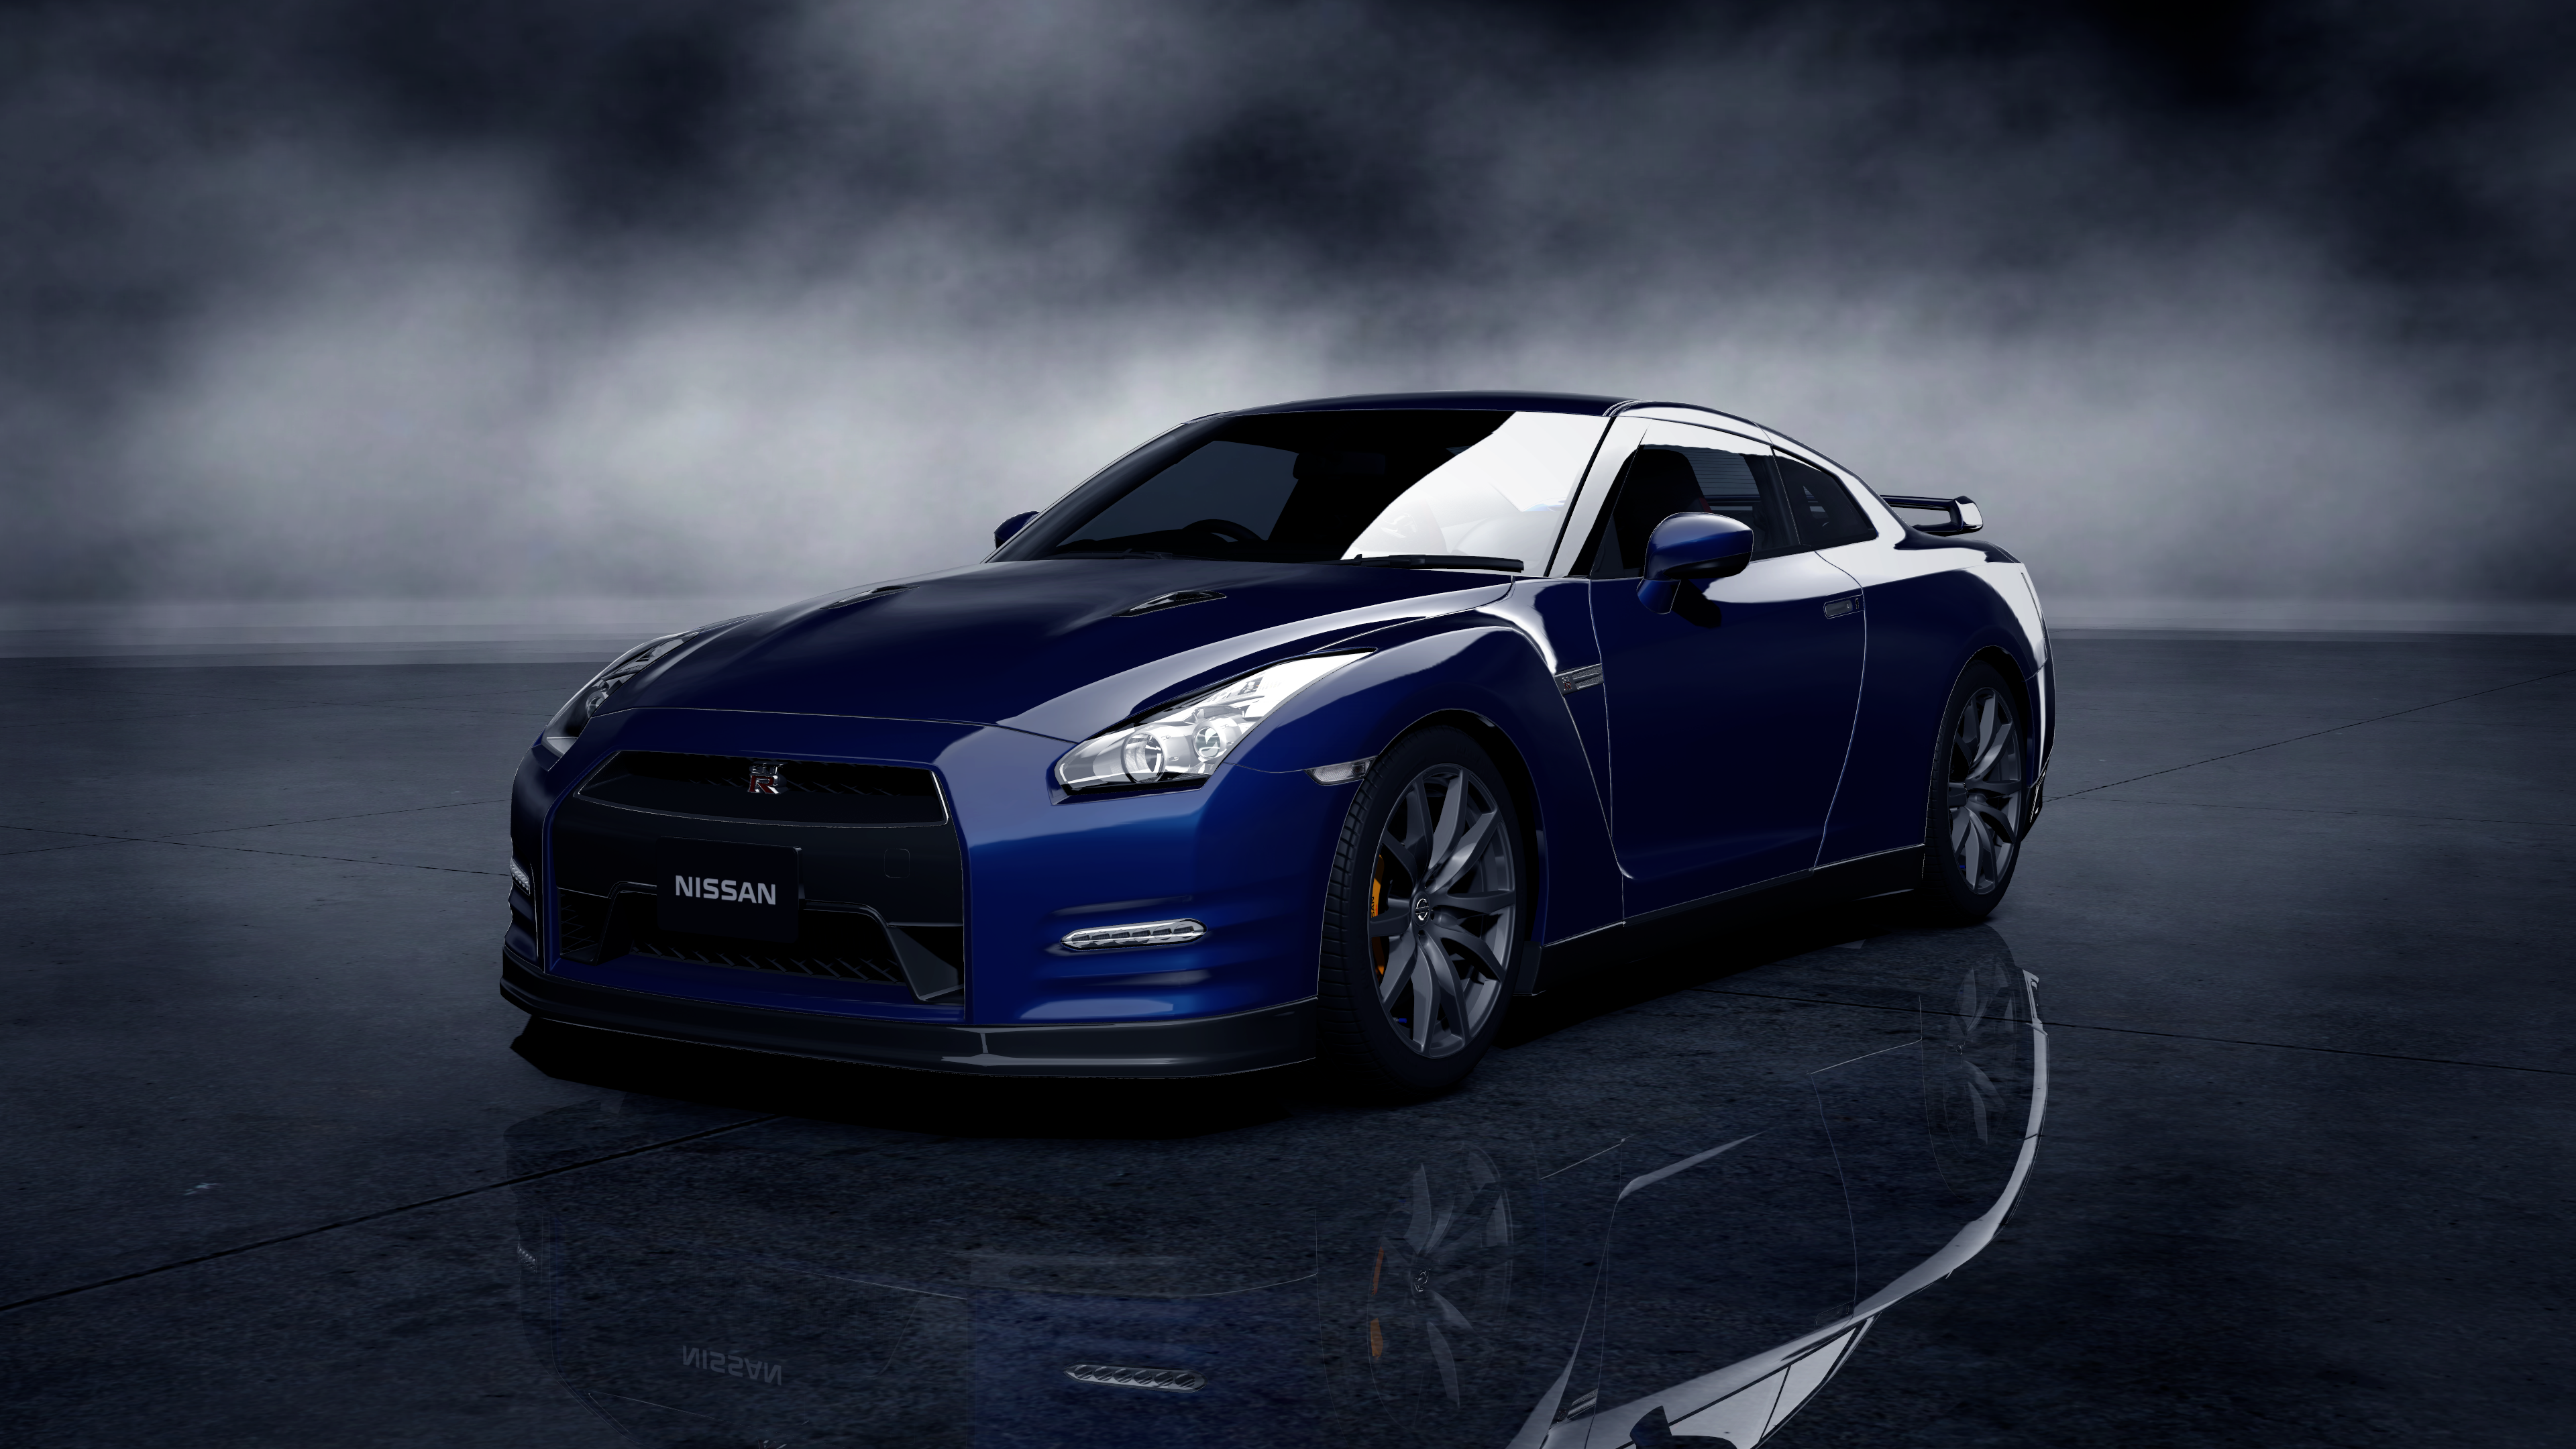 R35 Gtr For Sale 2019 2020 Upcoming Cars